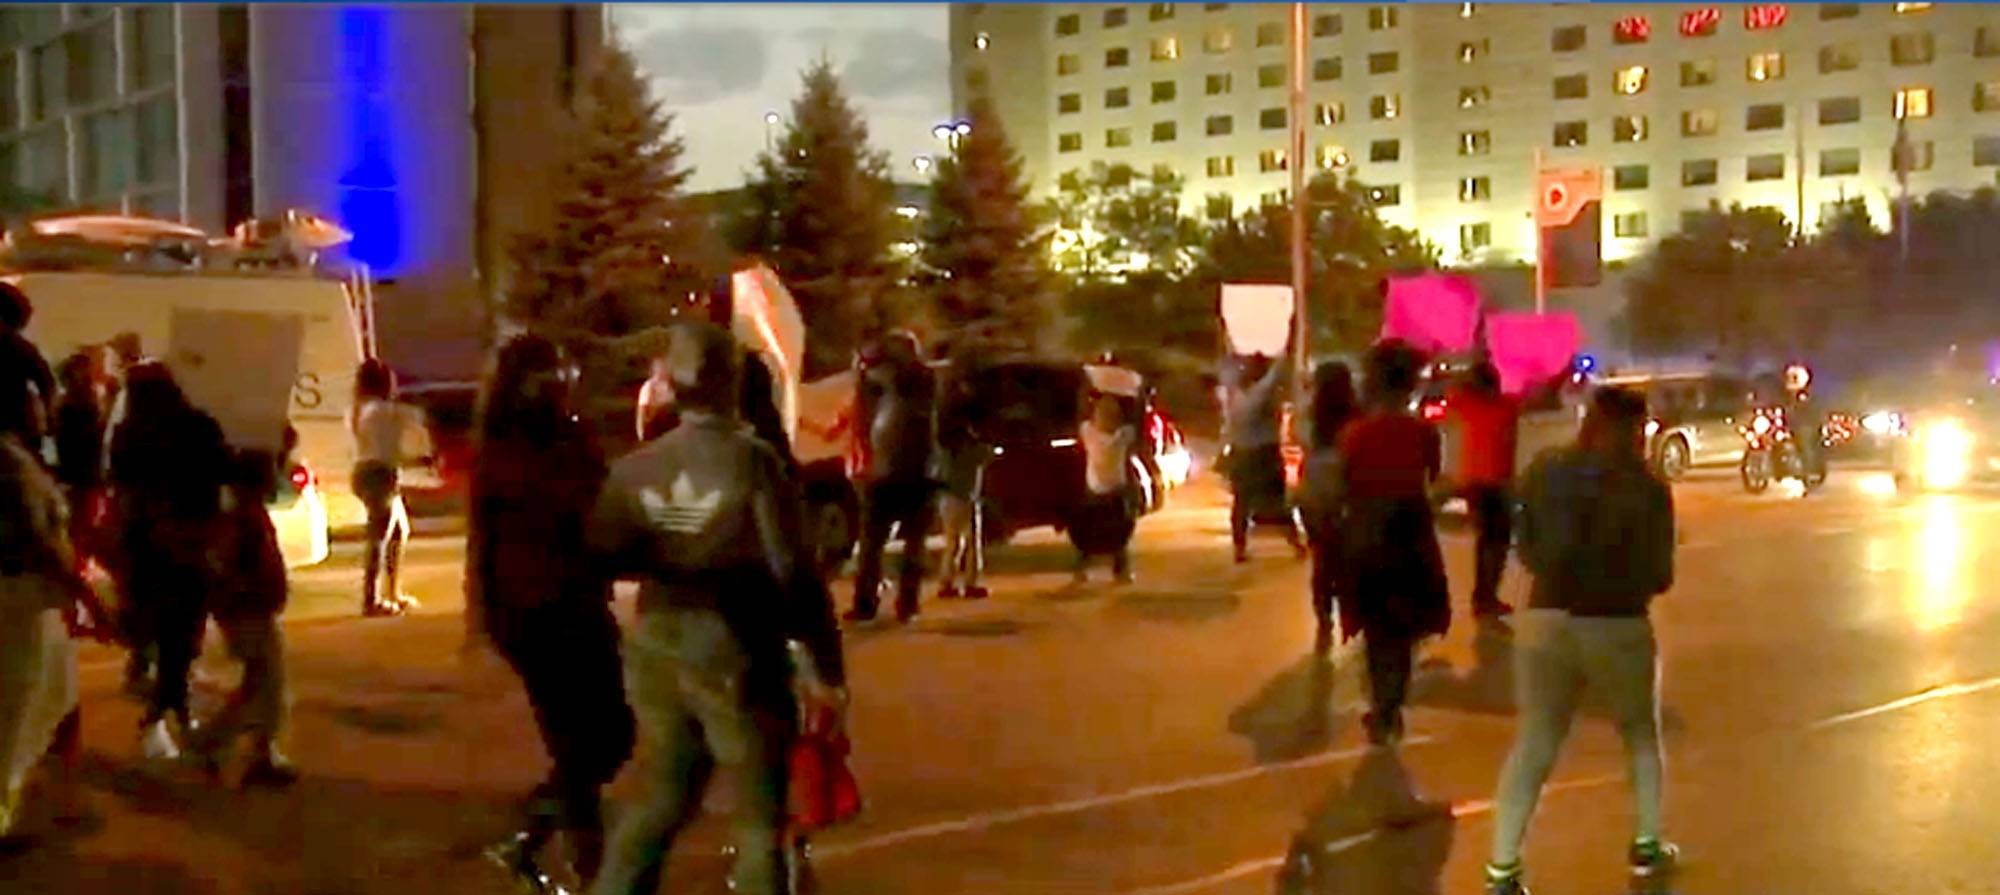 "COURTESY OF ABC7Protesters gathered in Rosemont Wednesday night, blocking traffic as they demonstrated yelling ""shut it down"" in regards to the hotel where 19-year-old Kenneka Jenkins was discovered dead in a walk-in freezer over the weekend."